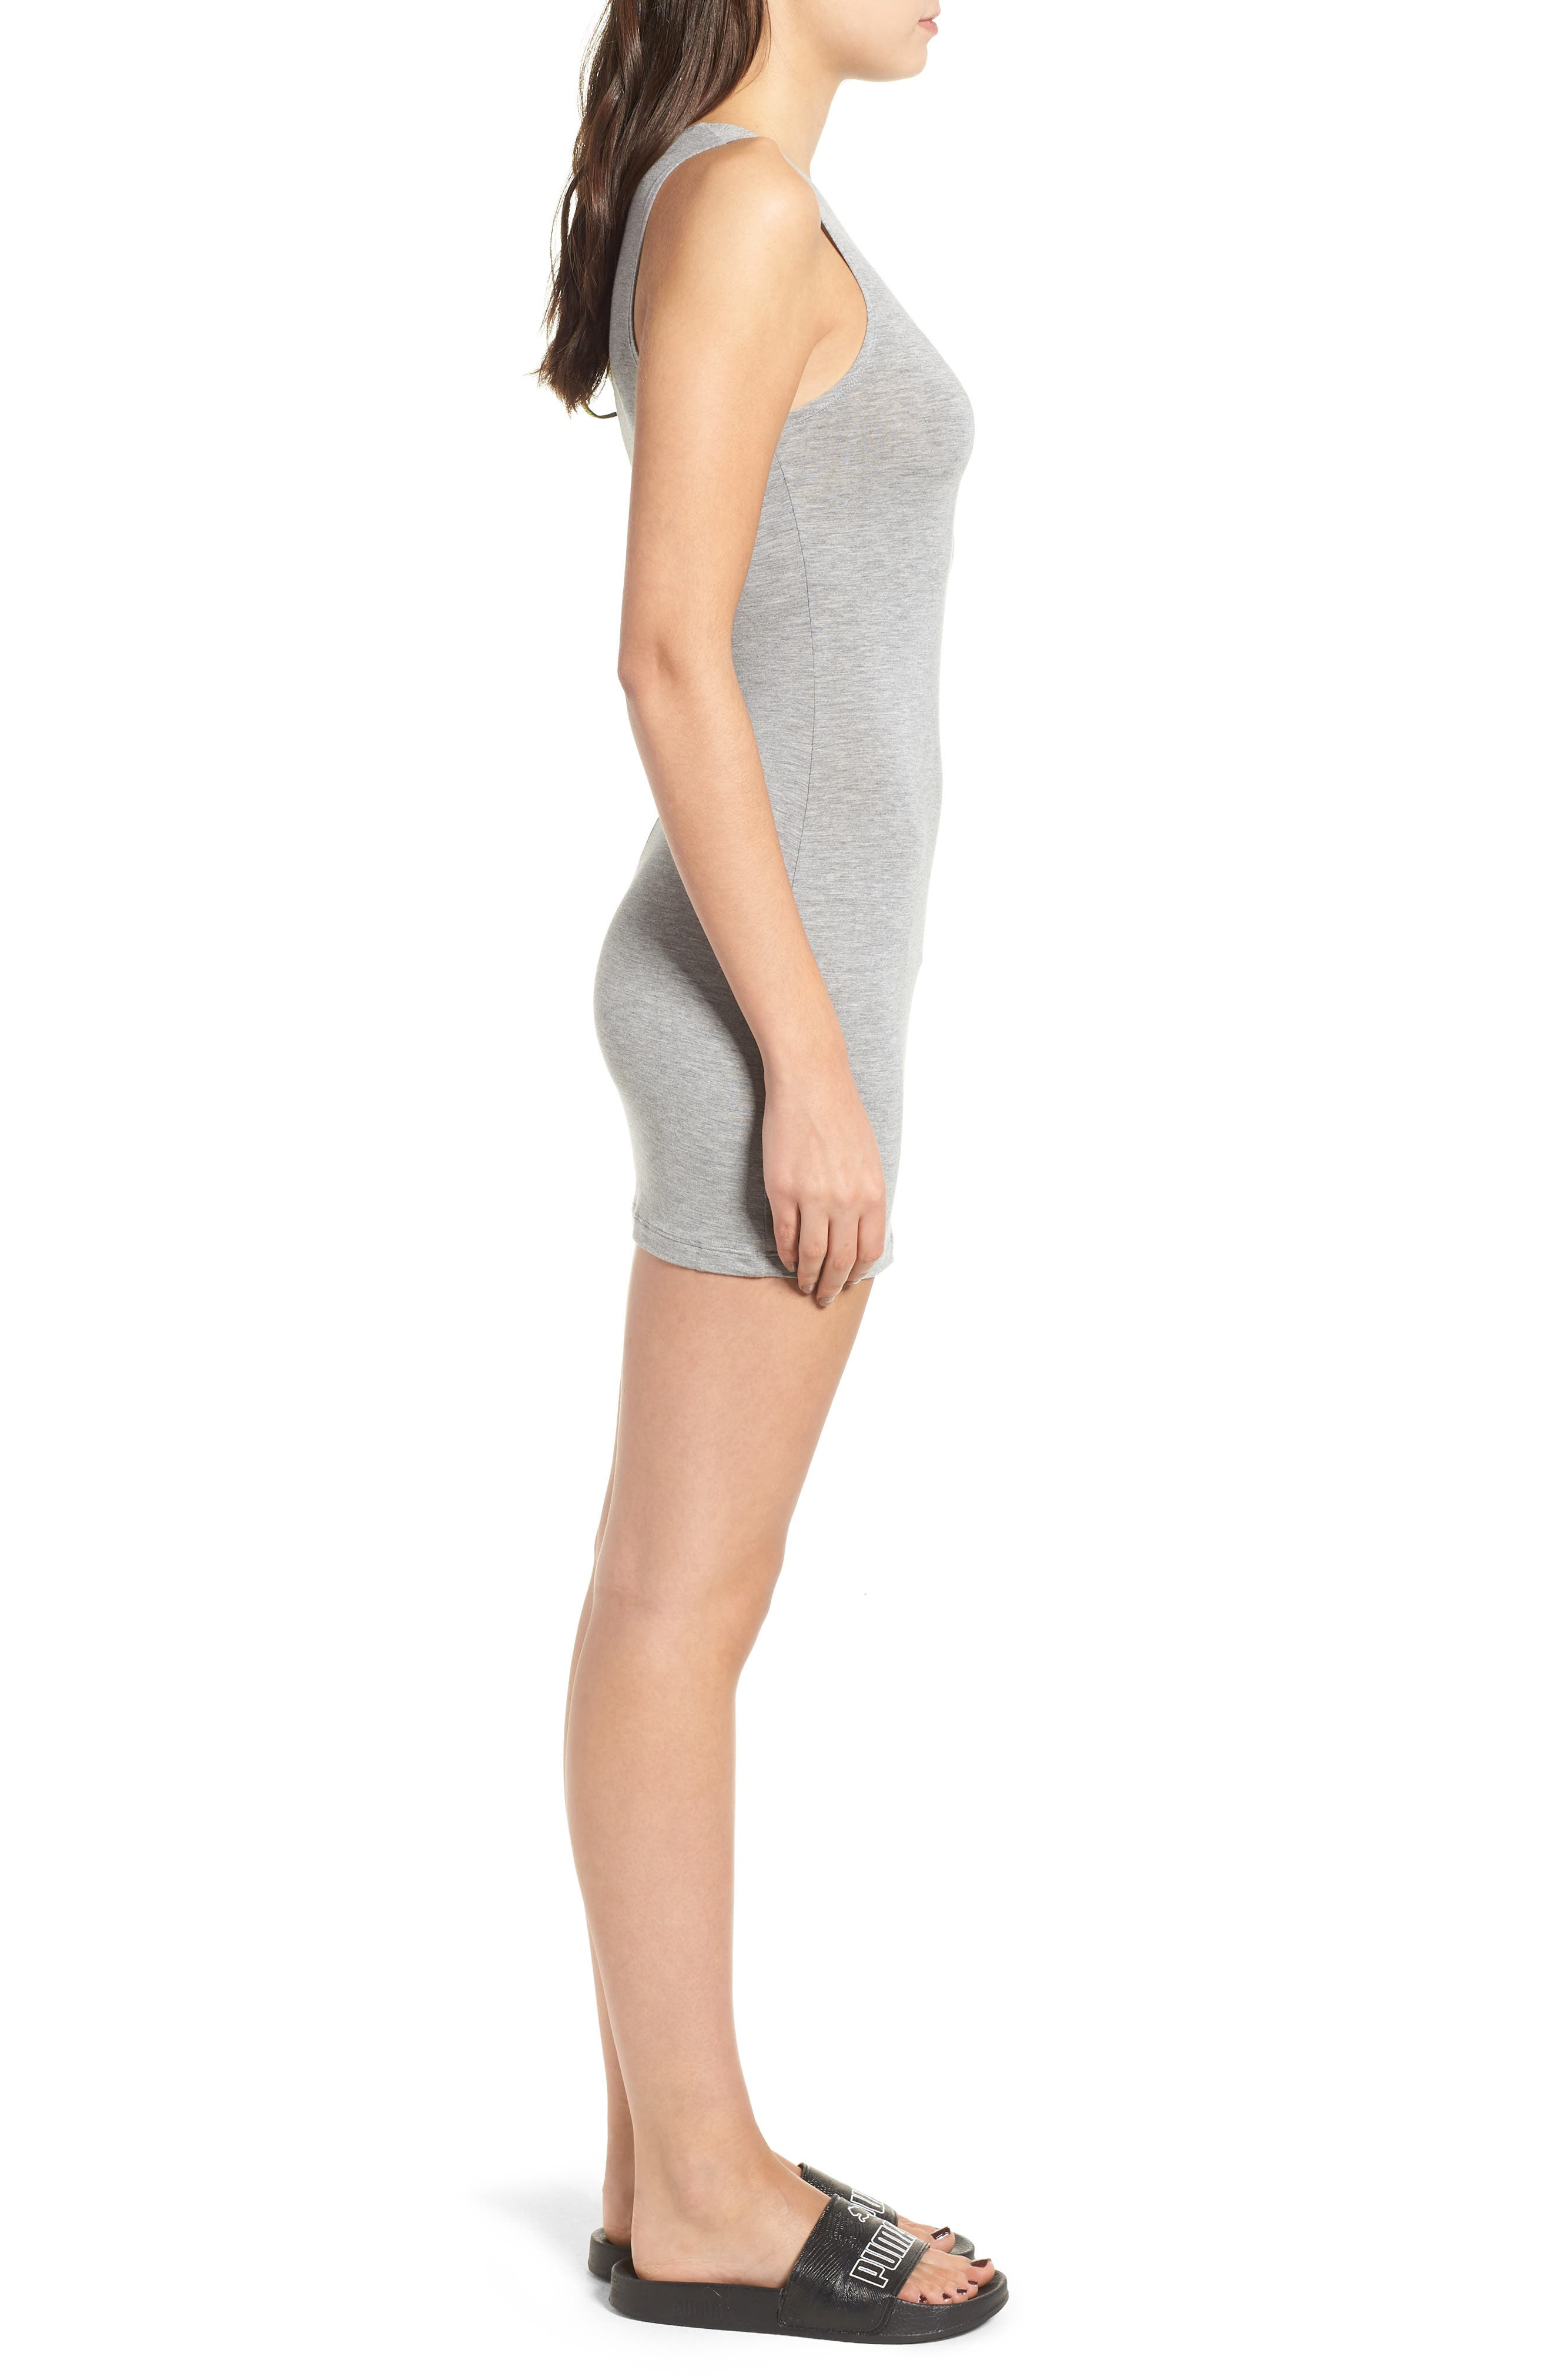 PUMA by Rihanna Body-Con Dress,                             Alternate thumbnail 3, color,                             Athletic Gray Heather